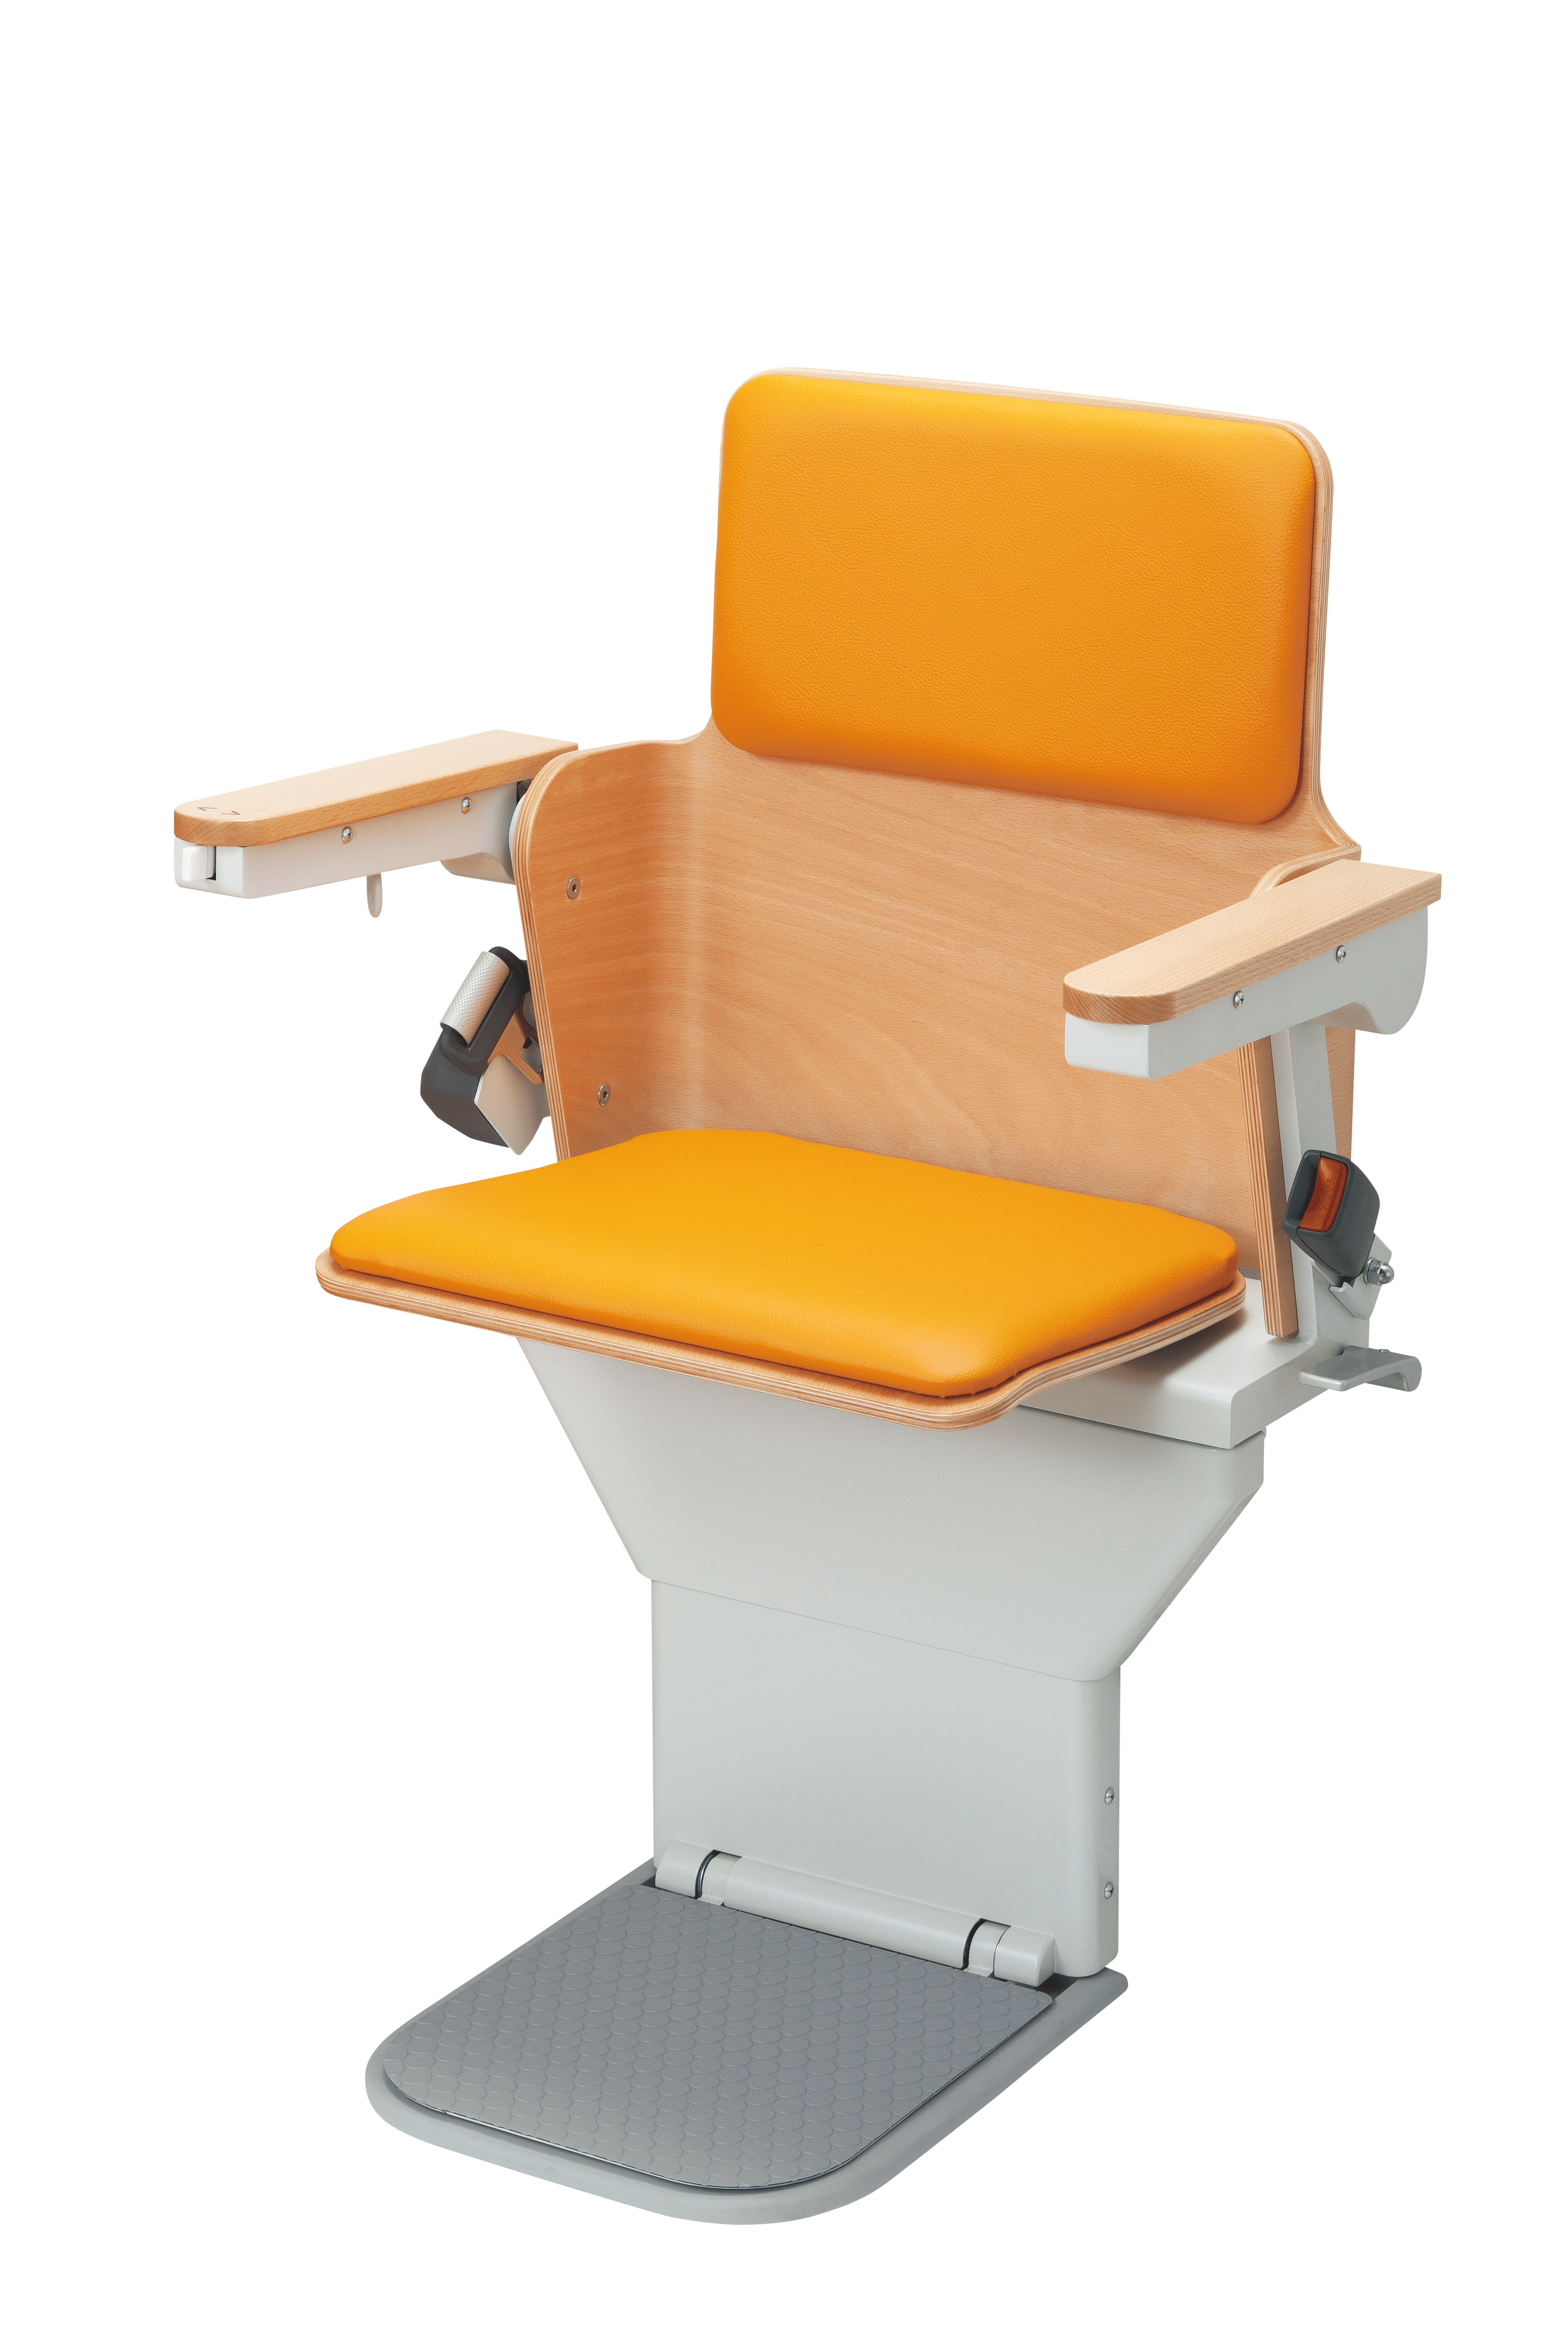 File:Stair lift orange.png - PNG Lift